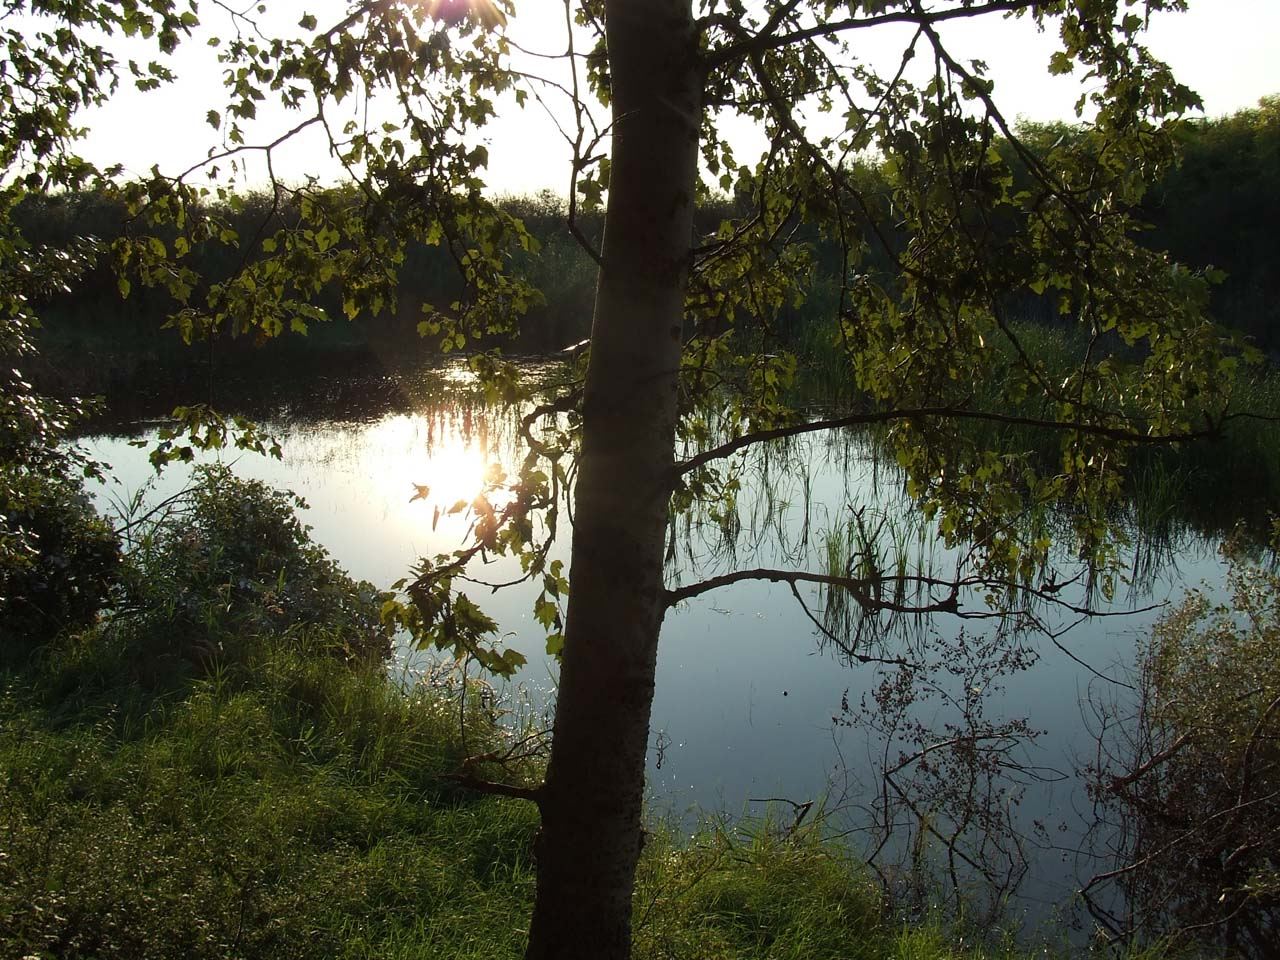 Another view of the peaceful Pond<br>Click to enlarge